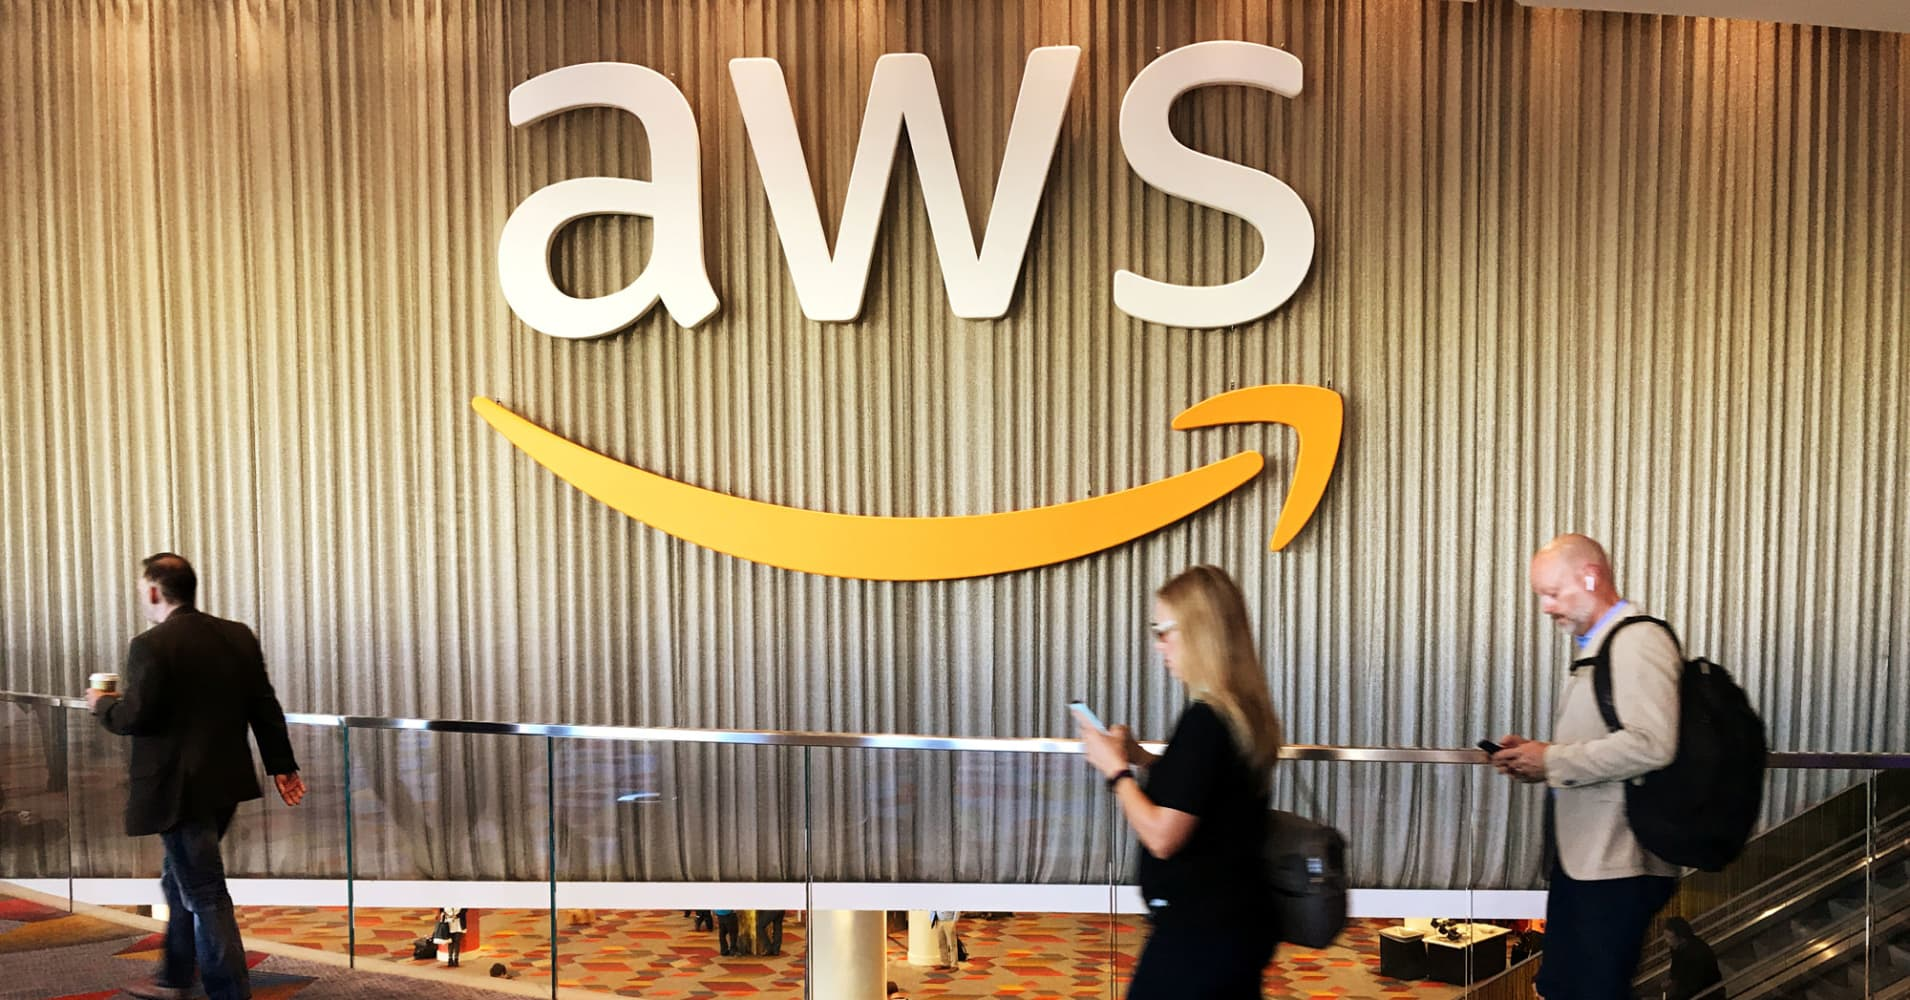 Competition and Regulation Pose Greatest Growth Risks to Amazon, RBC's Mahaney Says